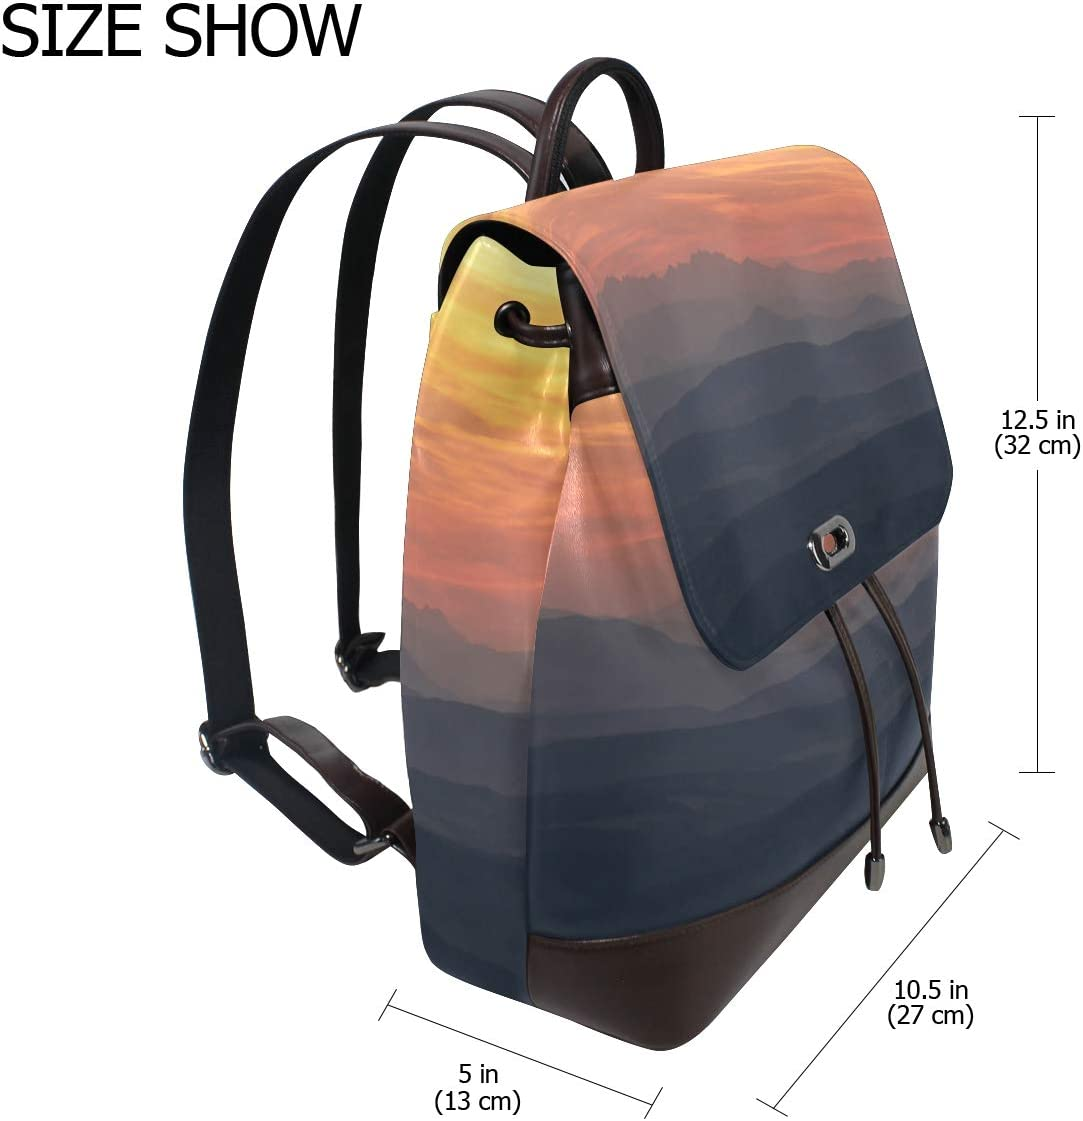 School Bag Storage Bag For Men Women Girls Boys Personalized Pattern Slovakia View Travel Bag Shopping Bag Backpack